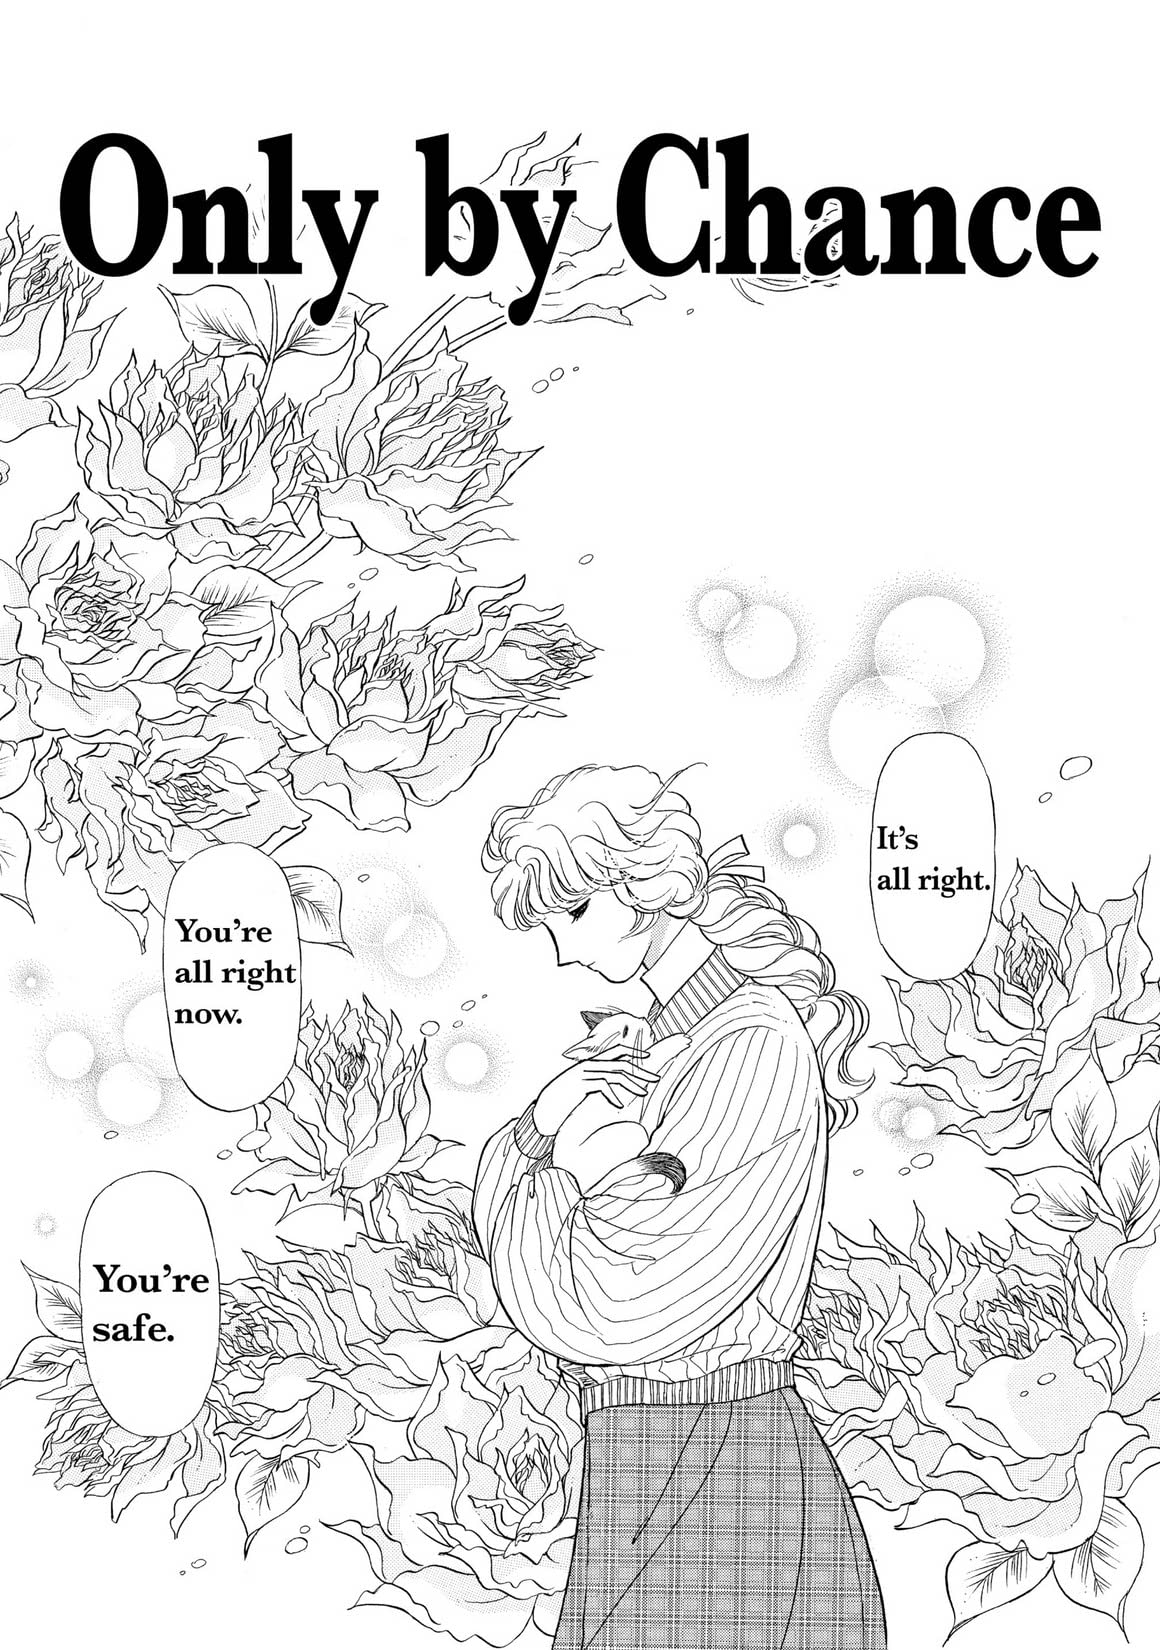 Only by Chance: Preview